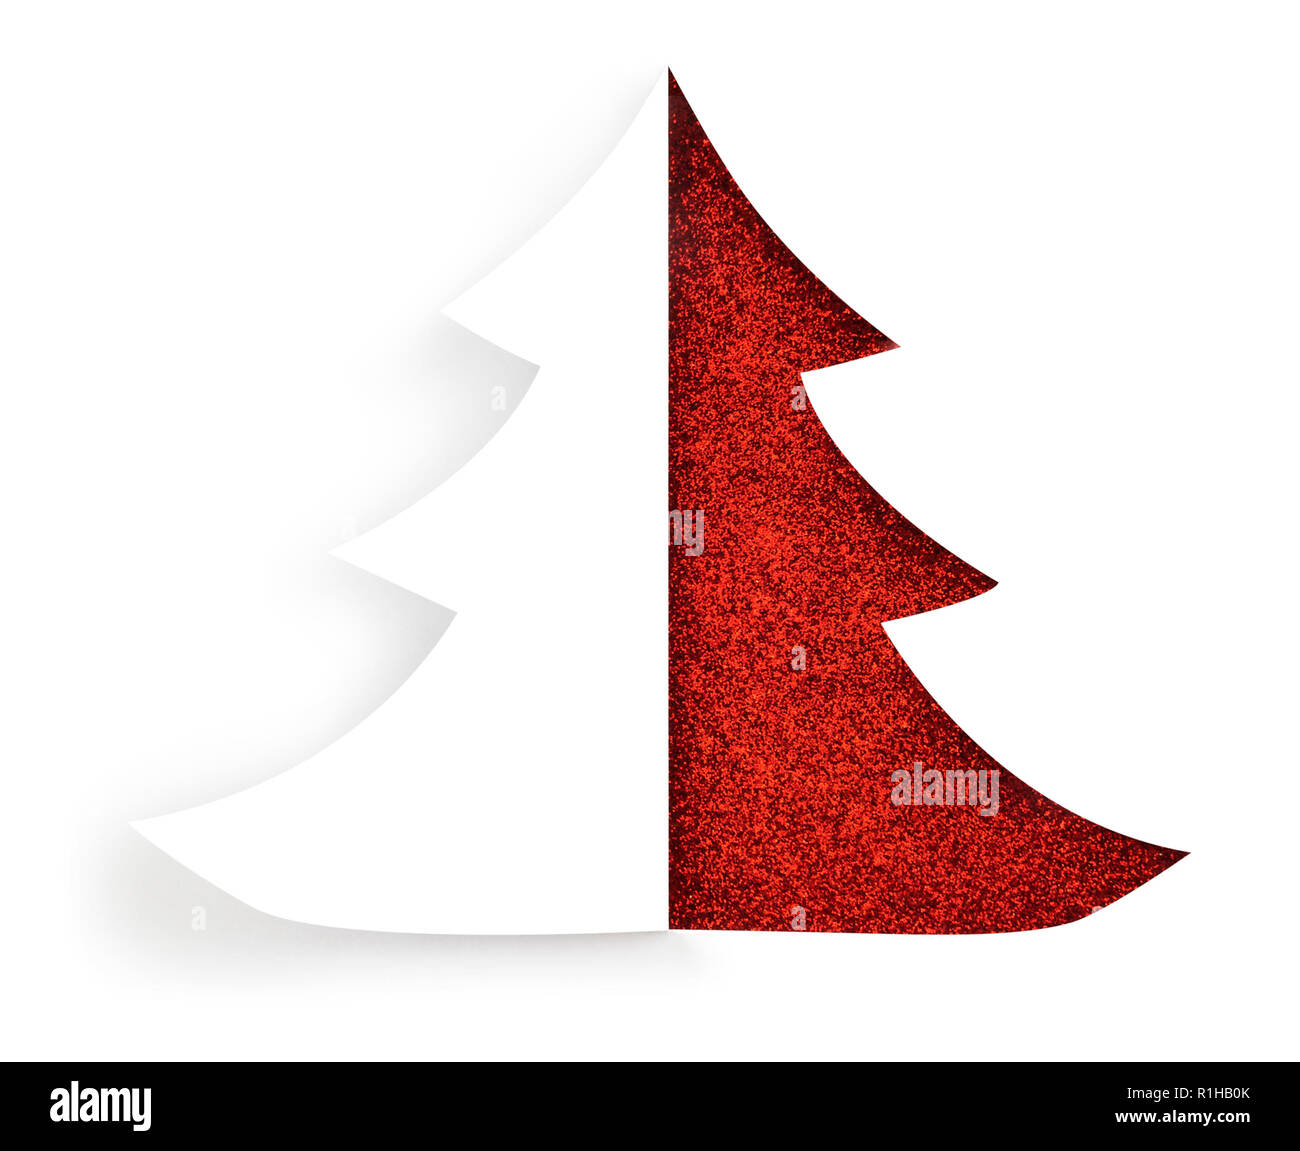 Isolated christmas glittering tree cut out design on a white background